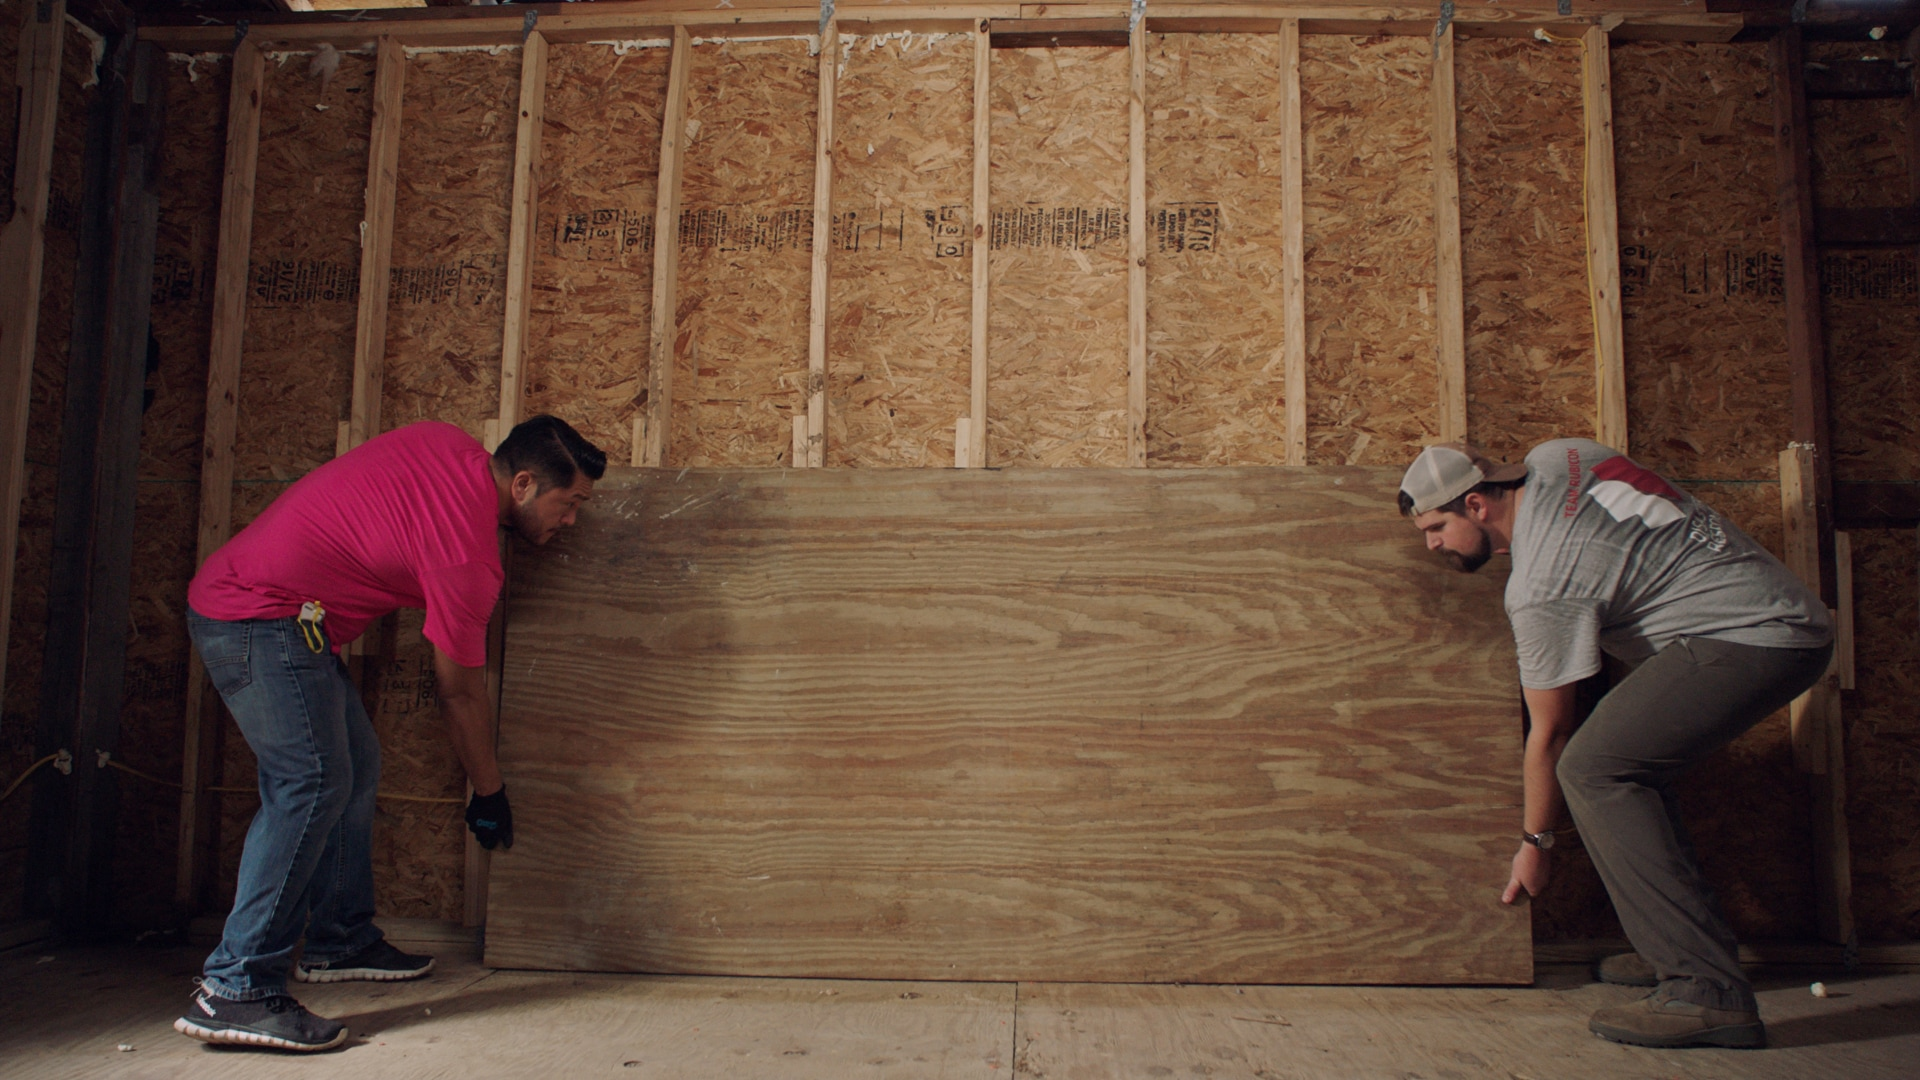 In September, T-Mobile employees joined forces with Team Rubicon volunteers to rebuild damaged homes in Texas.